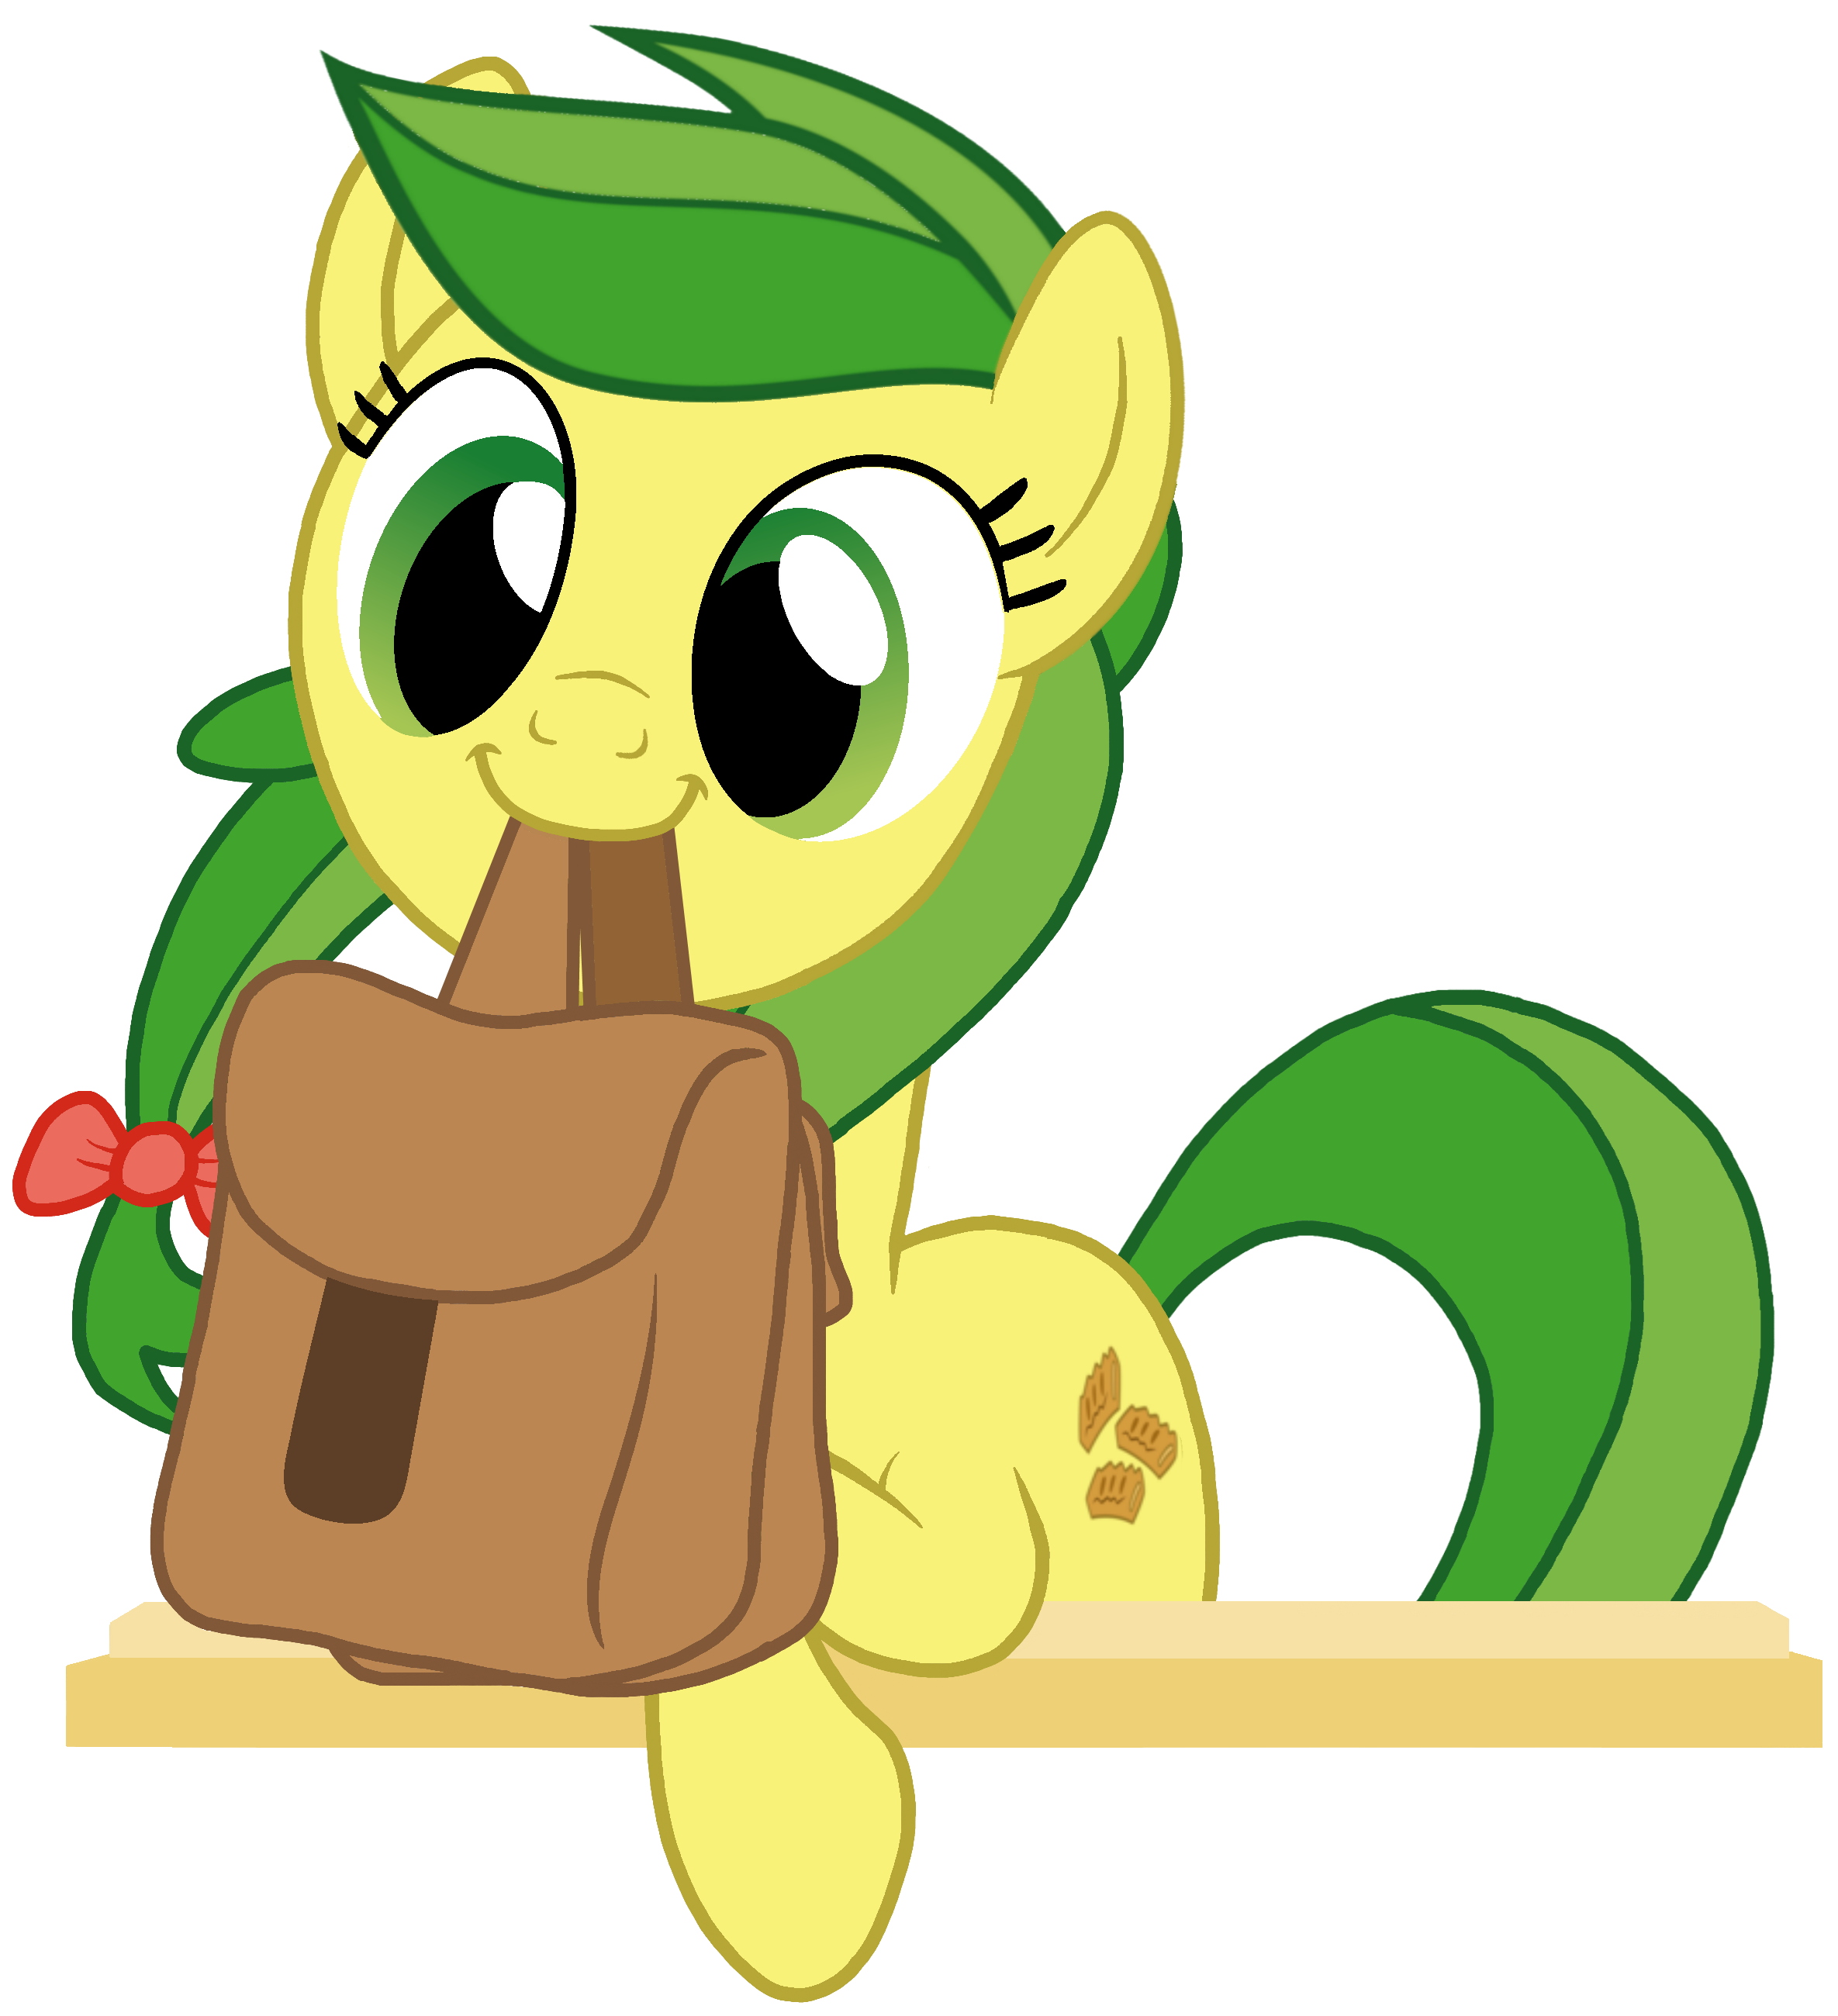 Apple fritter clipart png library download Adorable Apple Fritter Holding Bags by Torvusil on DeviantArt png library download